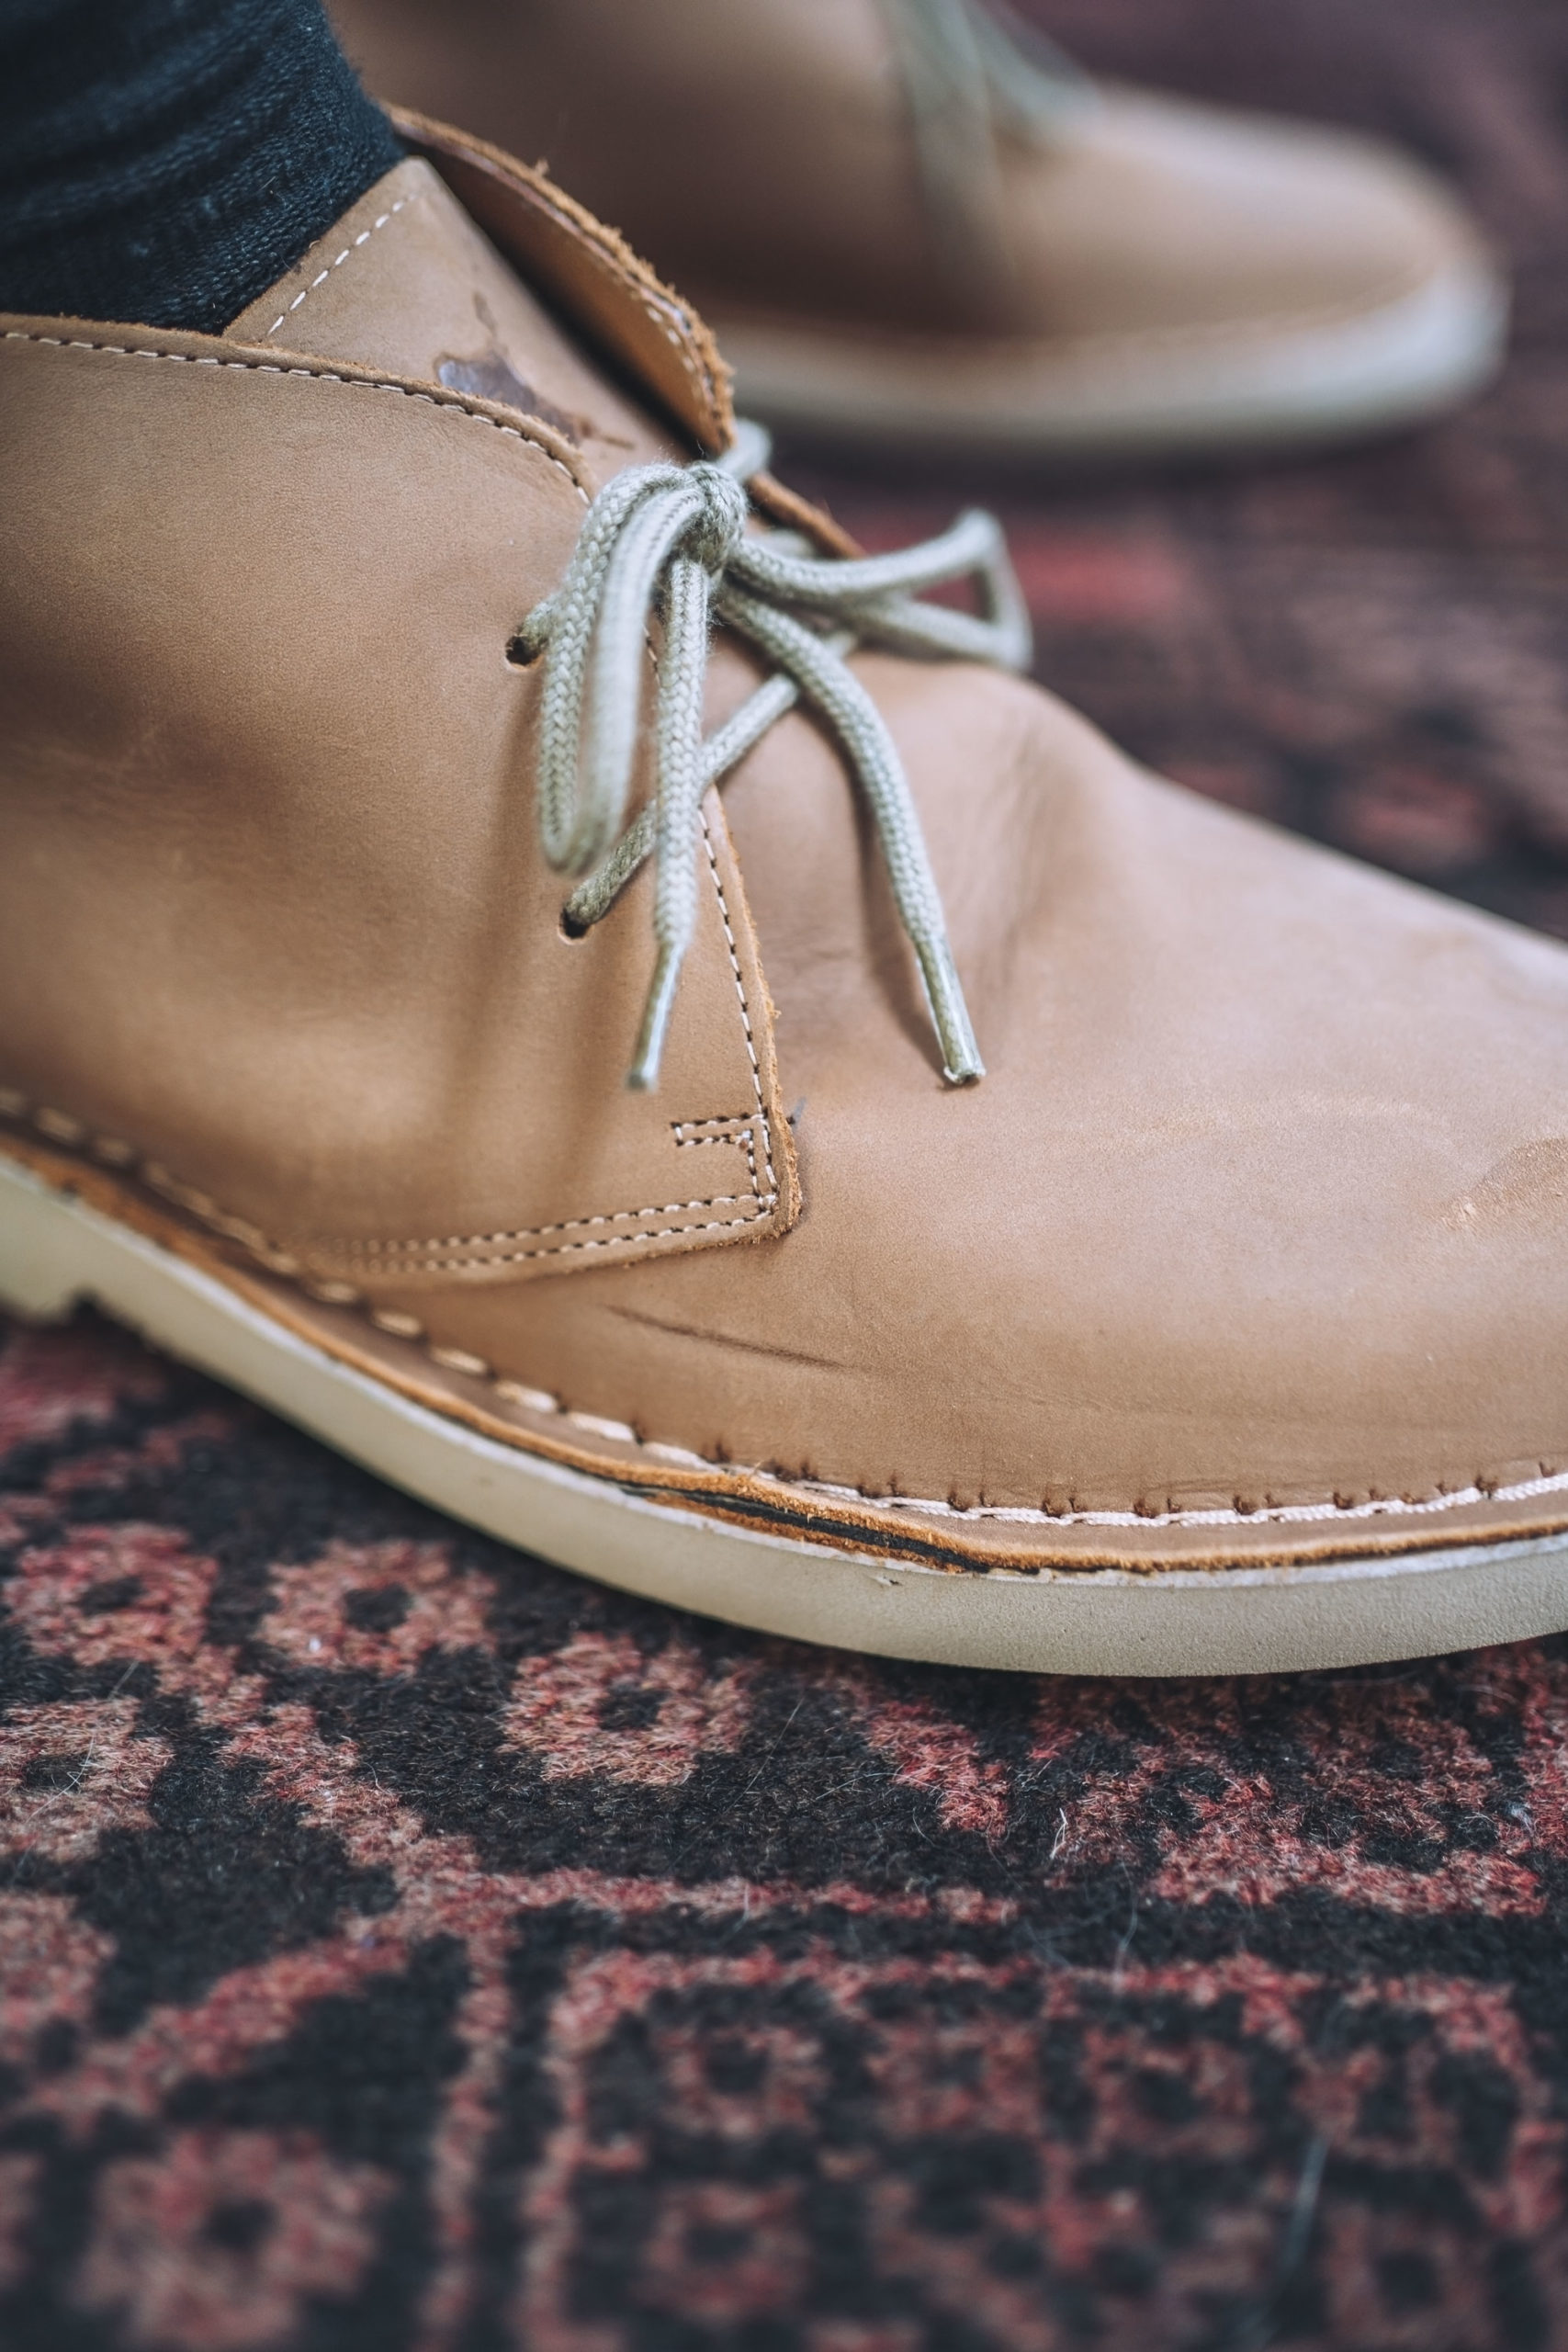 Leather boot with scuffs